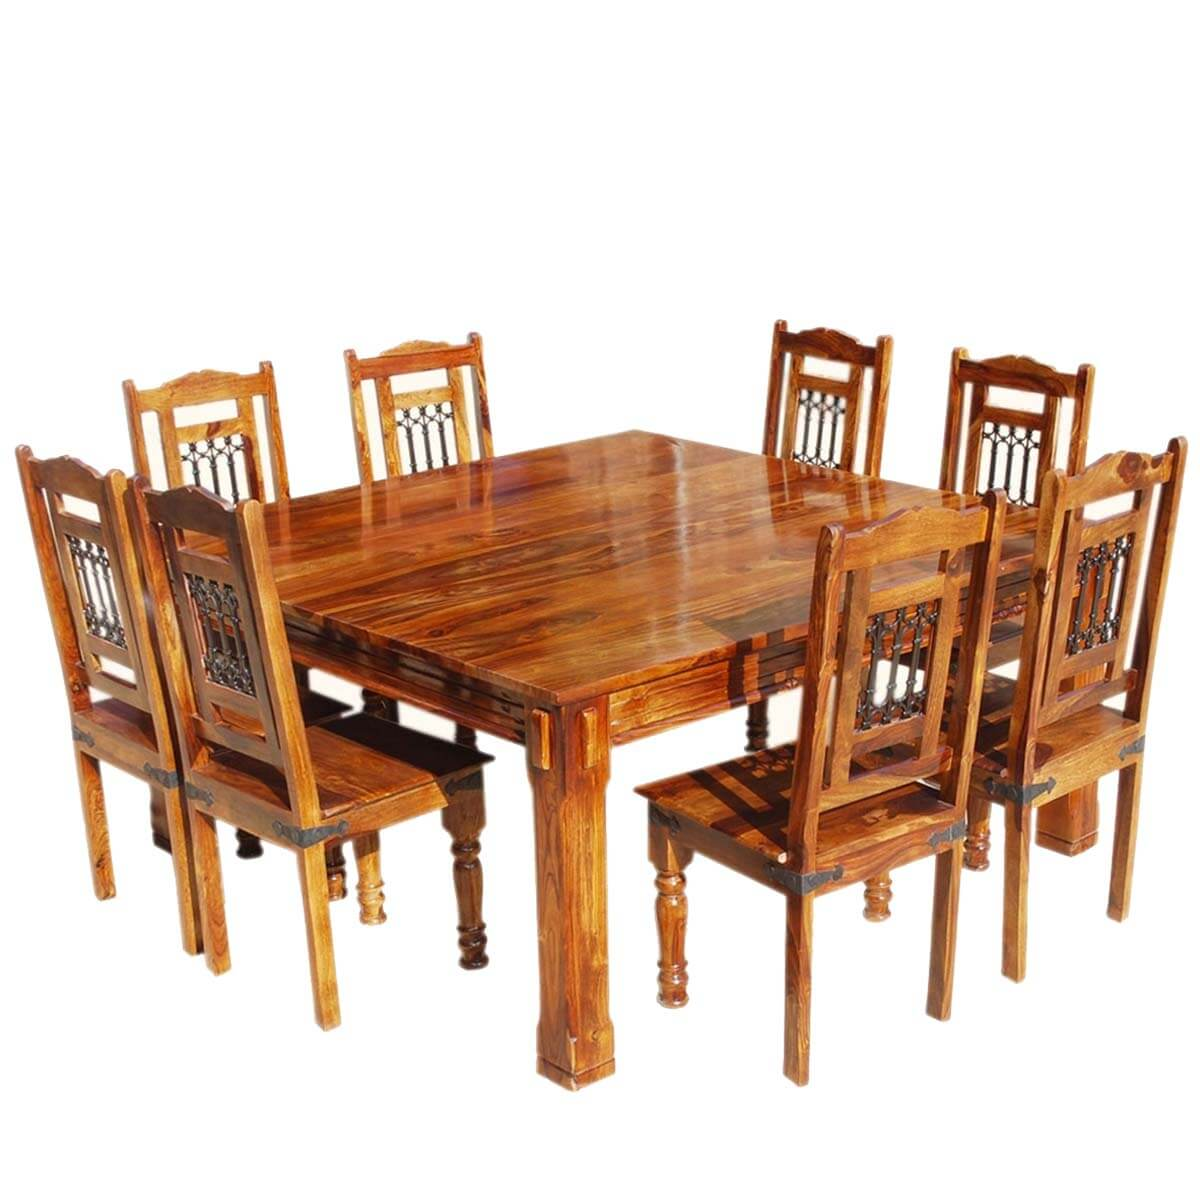 Transitional Solid Wood Rustic Square Dining Table Chairs Set